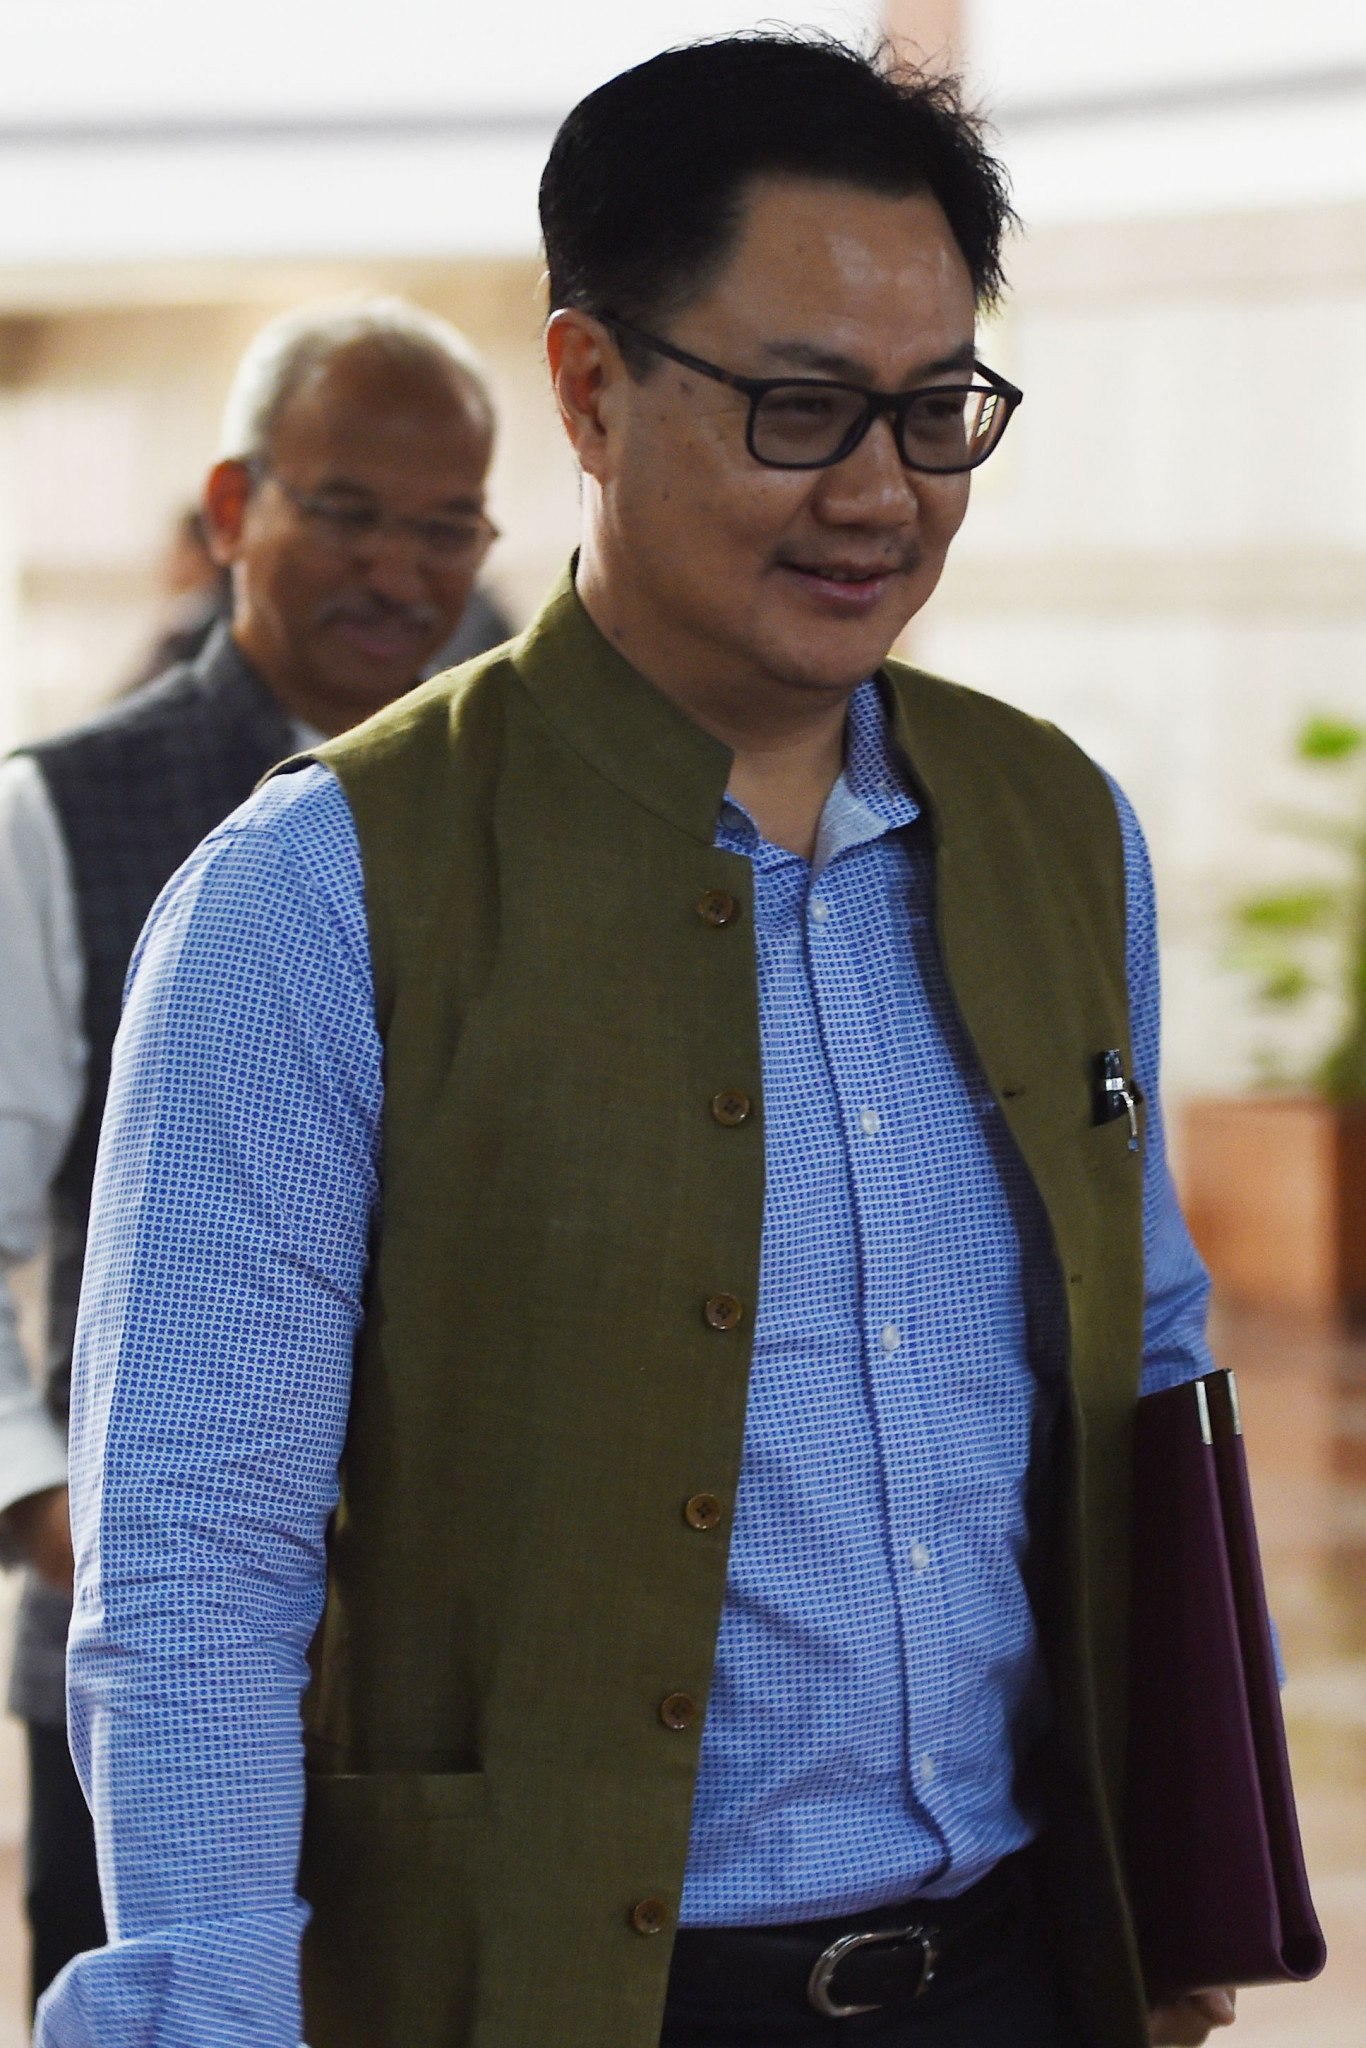 India's Sport Minister Kiren Rijiju has claimed that there will be no disruptions to the hosting of the Asian Wrestling Championships, despite the coronavirus crisis in China ©Getty Images